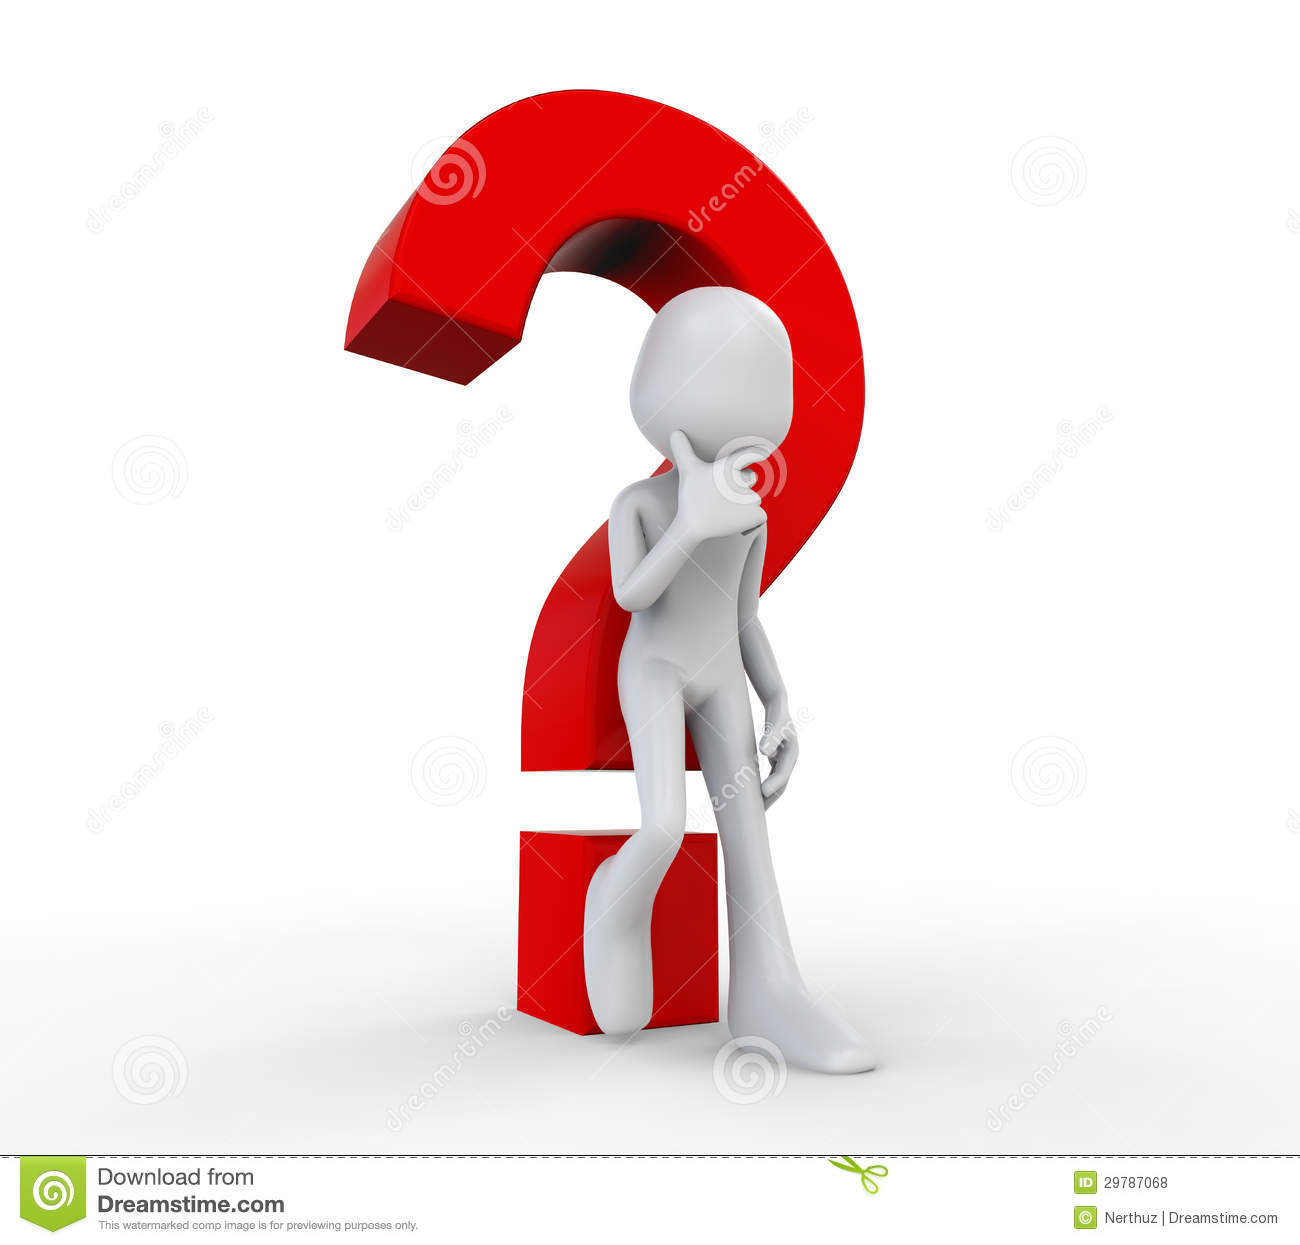 Free Animated Question Mark Clipart For Powerpoint